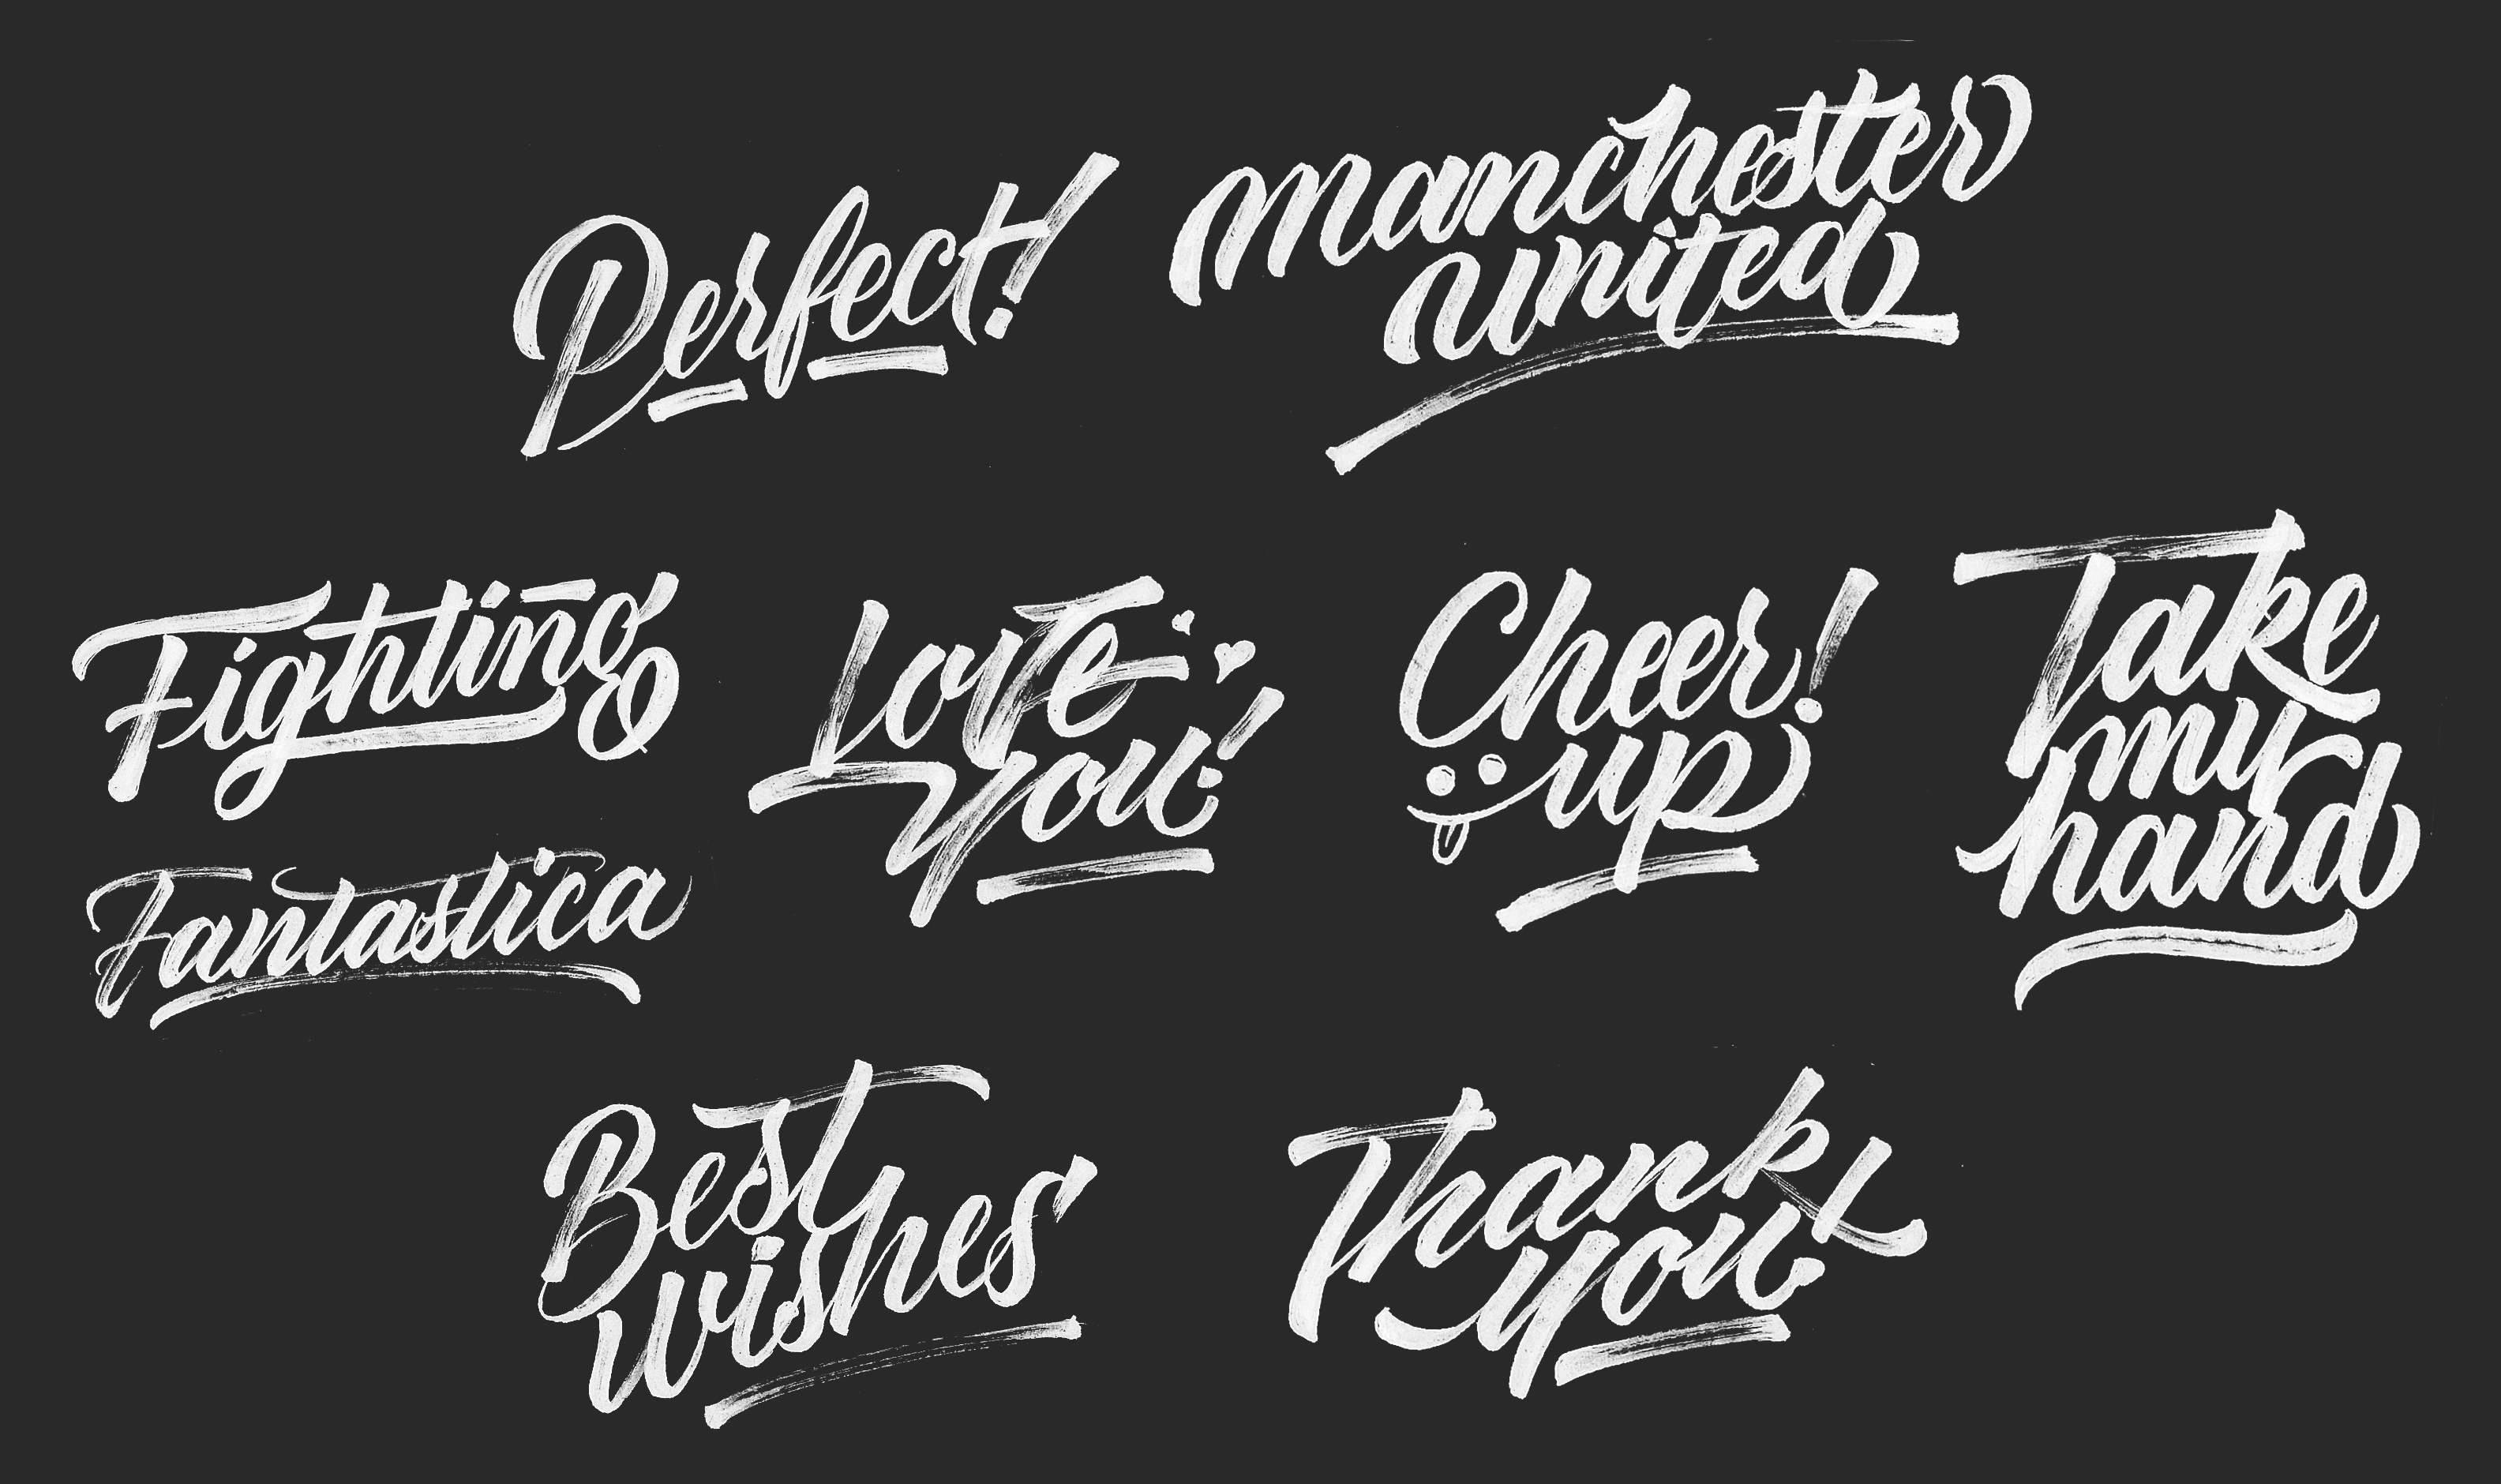 Signature Design or Logo Design in Brush lettering Style